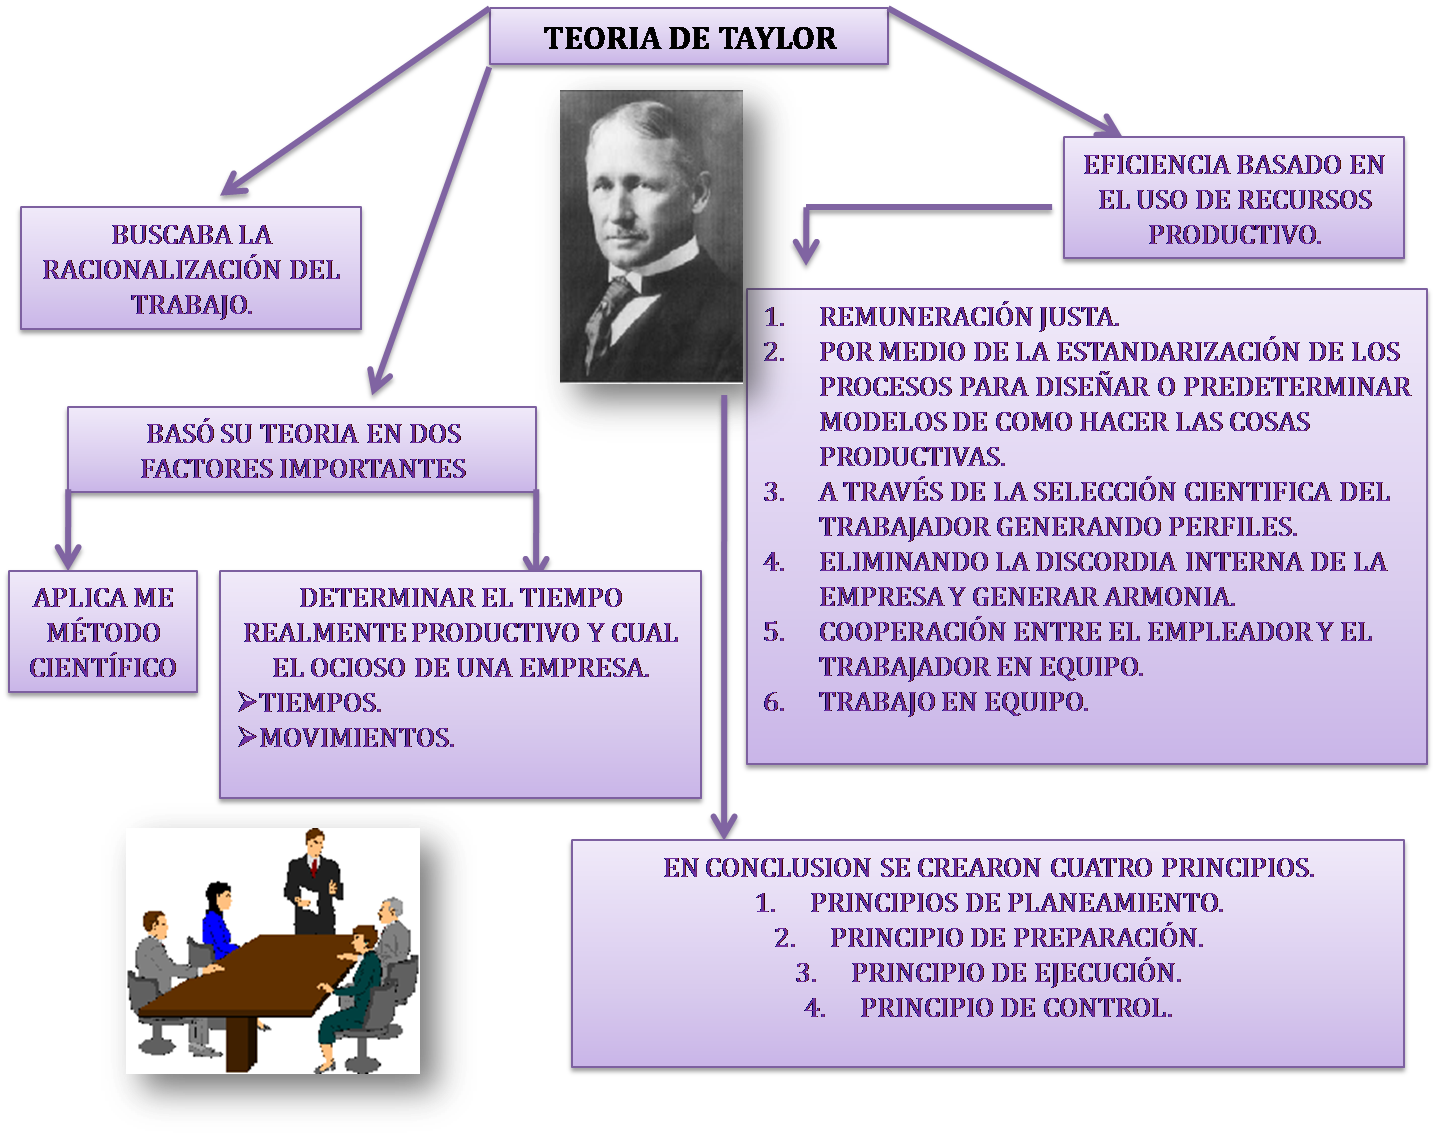 frederick w taylor Us inventor frederick winslow taylor analyzed shop production his time-and-motion system led to modern mass production techniques frederick winslow taylor was born on march 20, 1856, in .